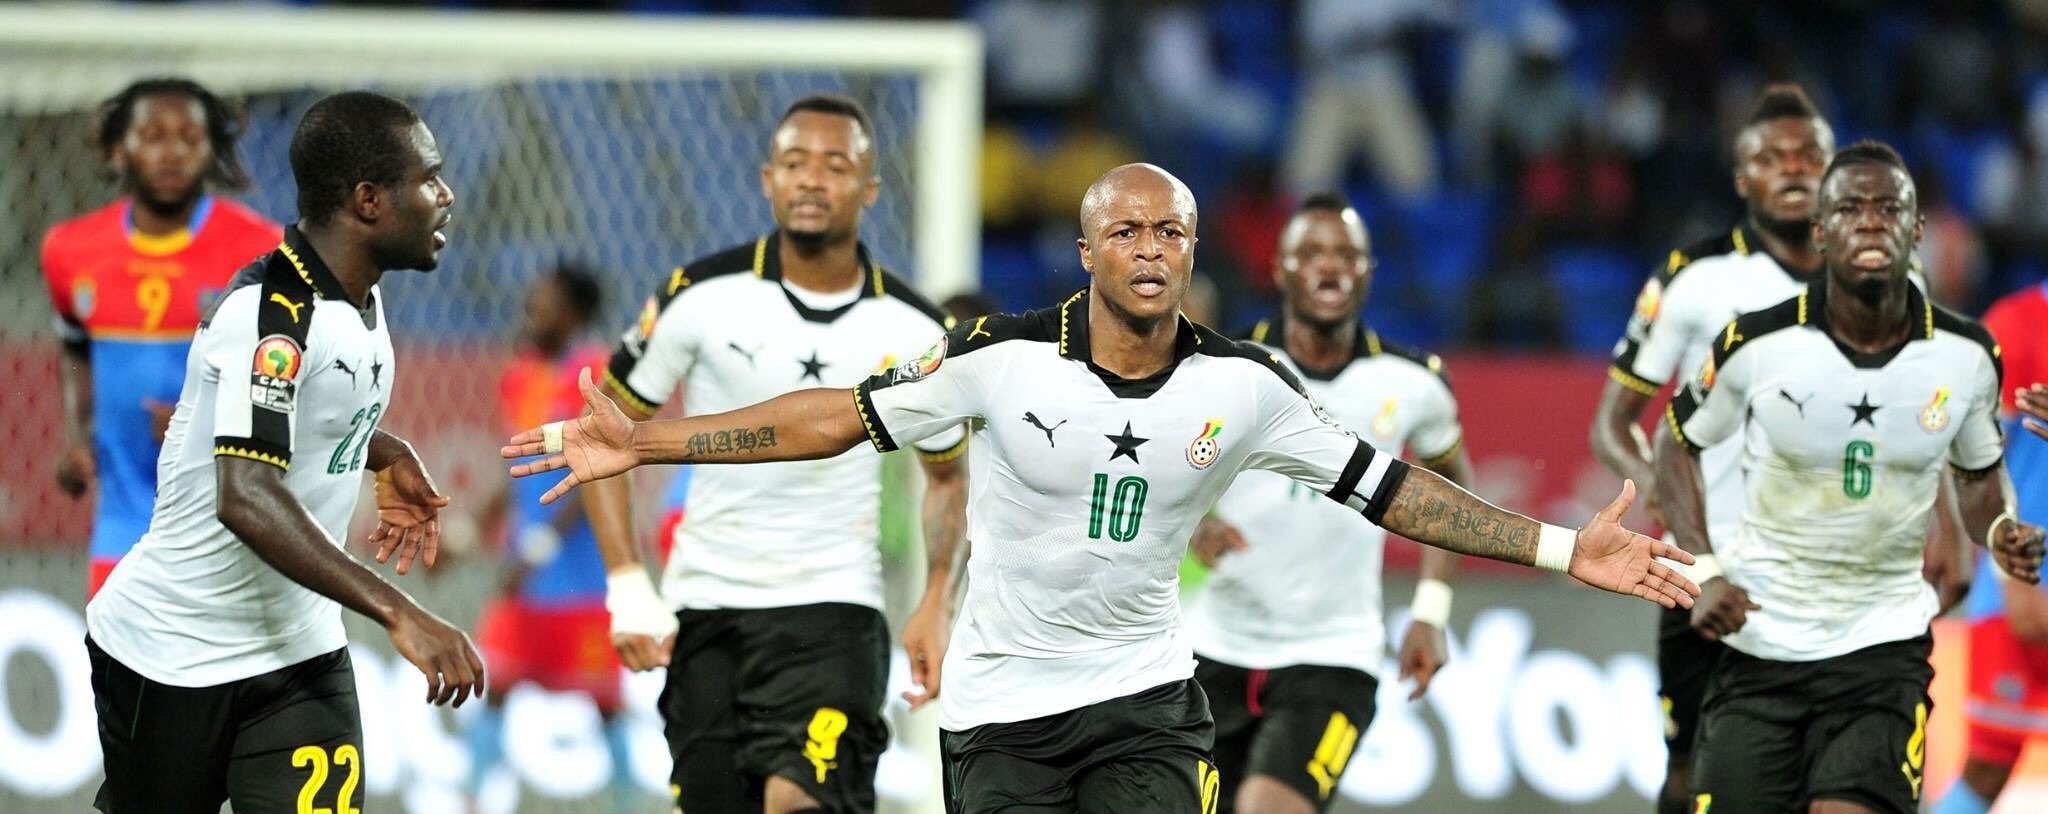 #AFCON2019: Ayew brothers out of Ghana squad for Sierra Leone doubleheader